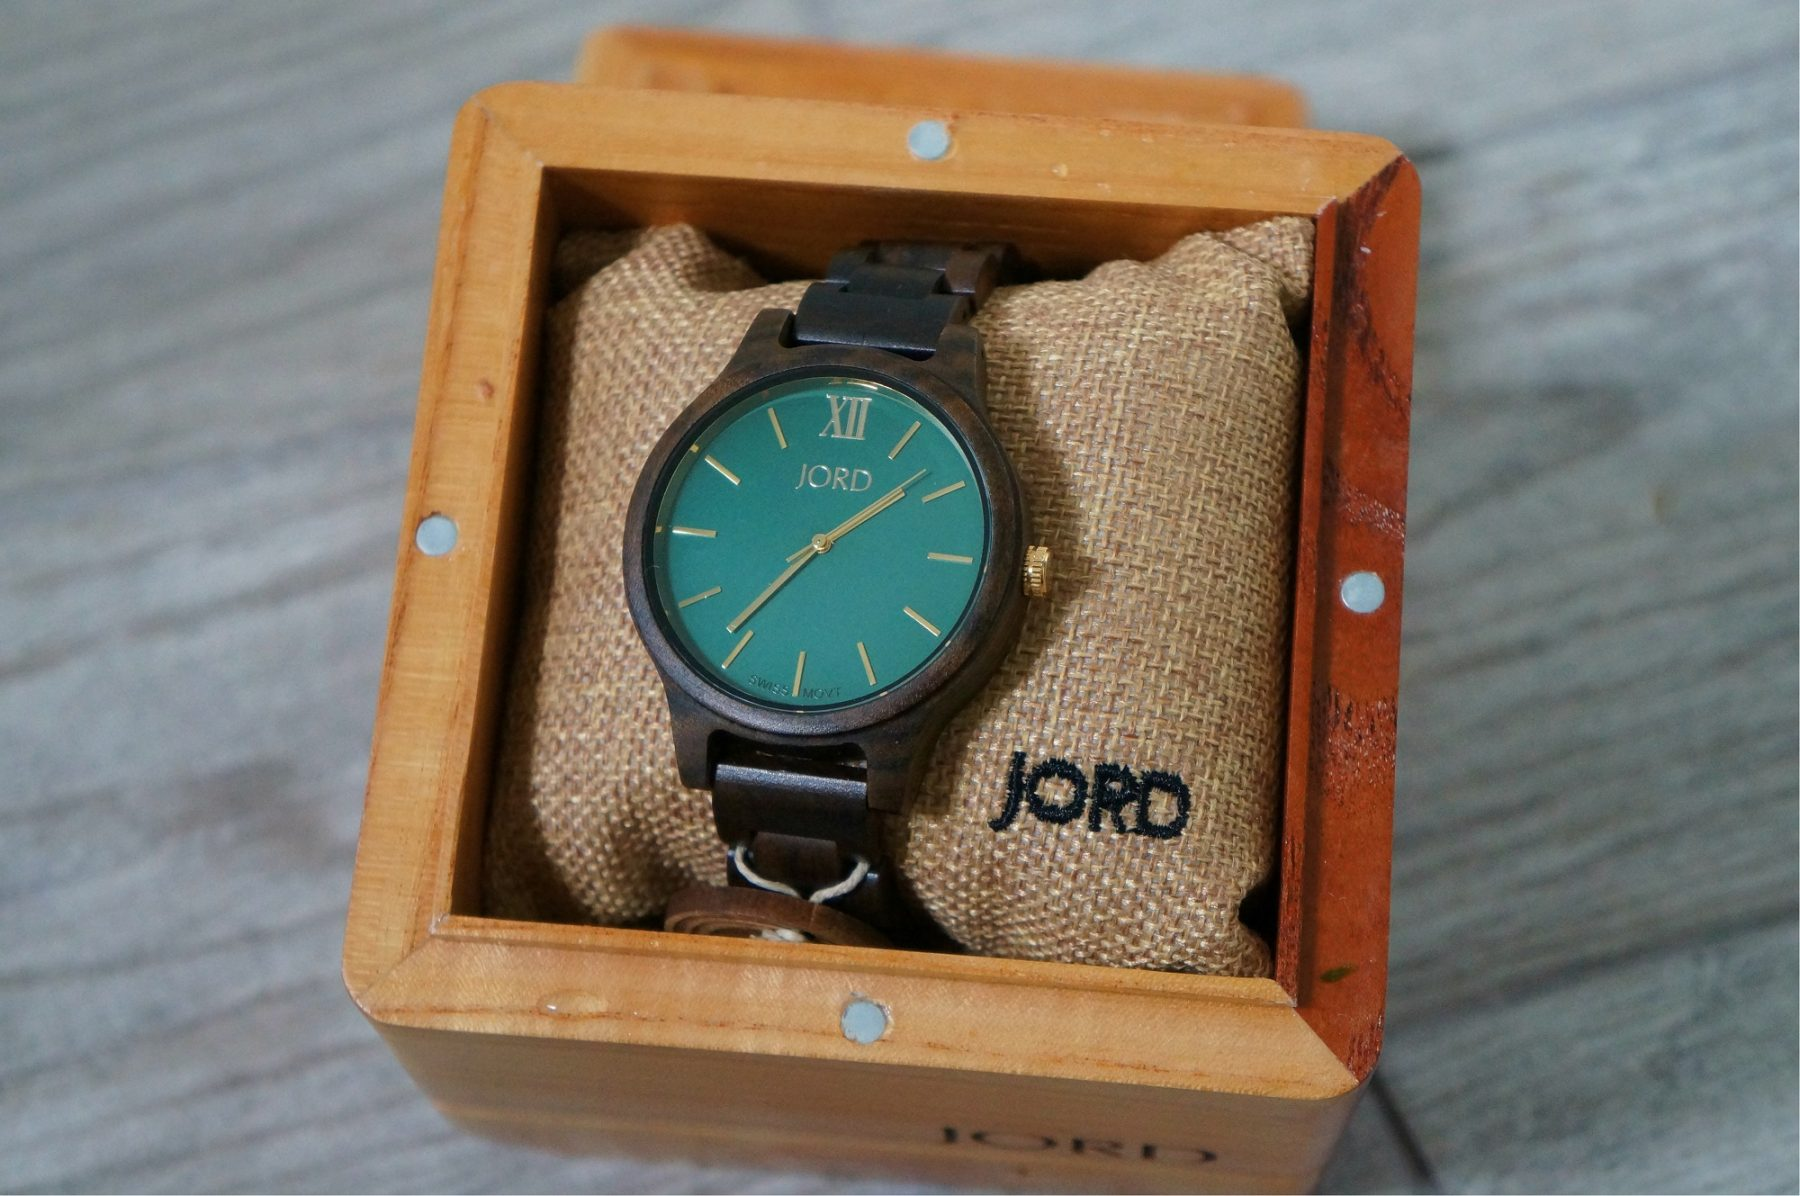 jord-wood-watch-in-a-box